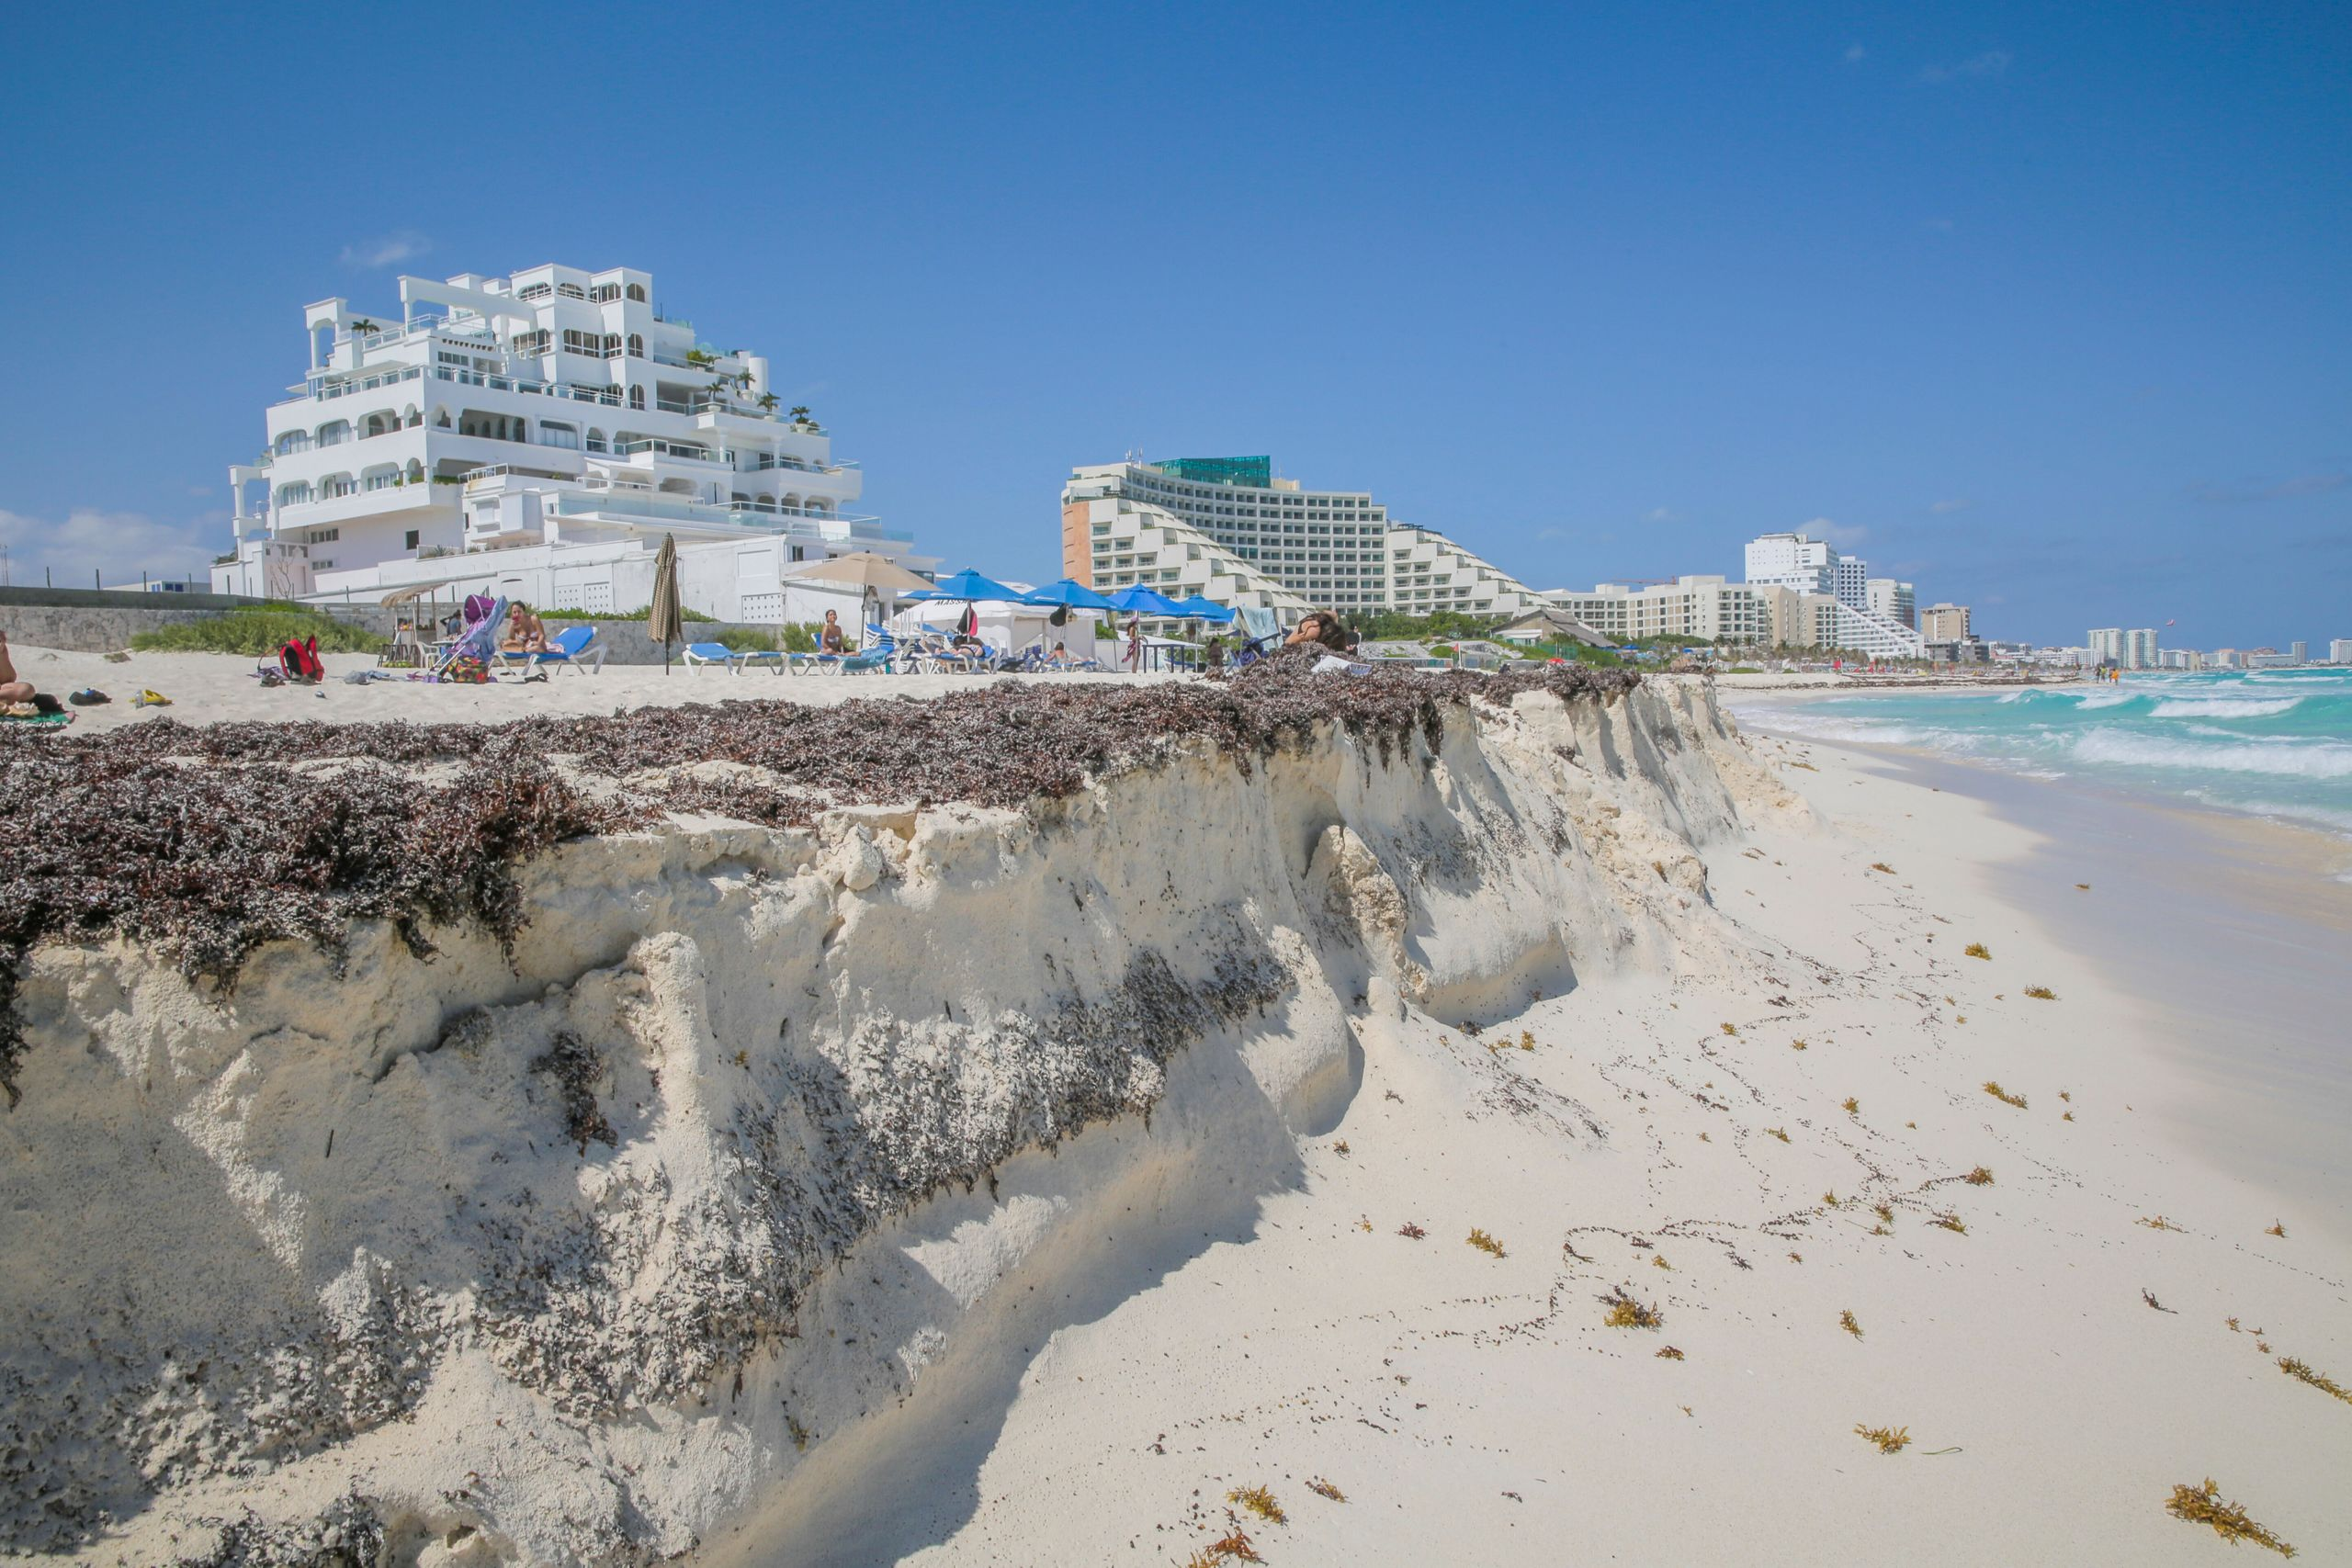 Hotel owners in Cancún and other tourist spots pay to repair beach erosion caused by waves and storms, sometimes truck